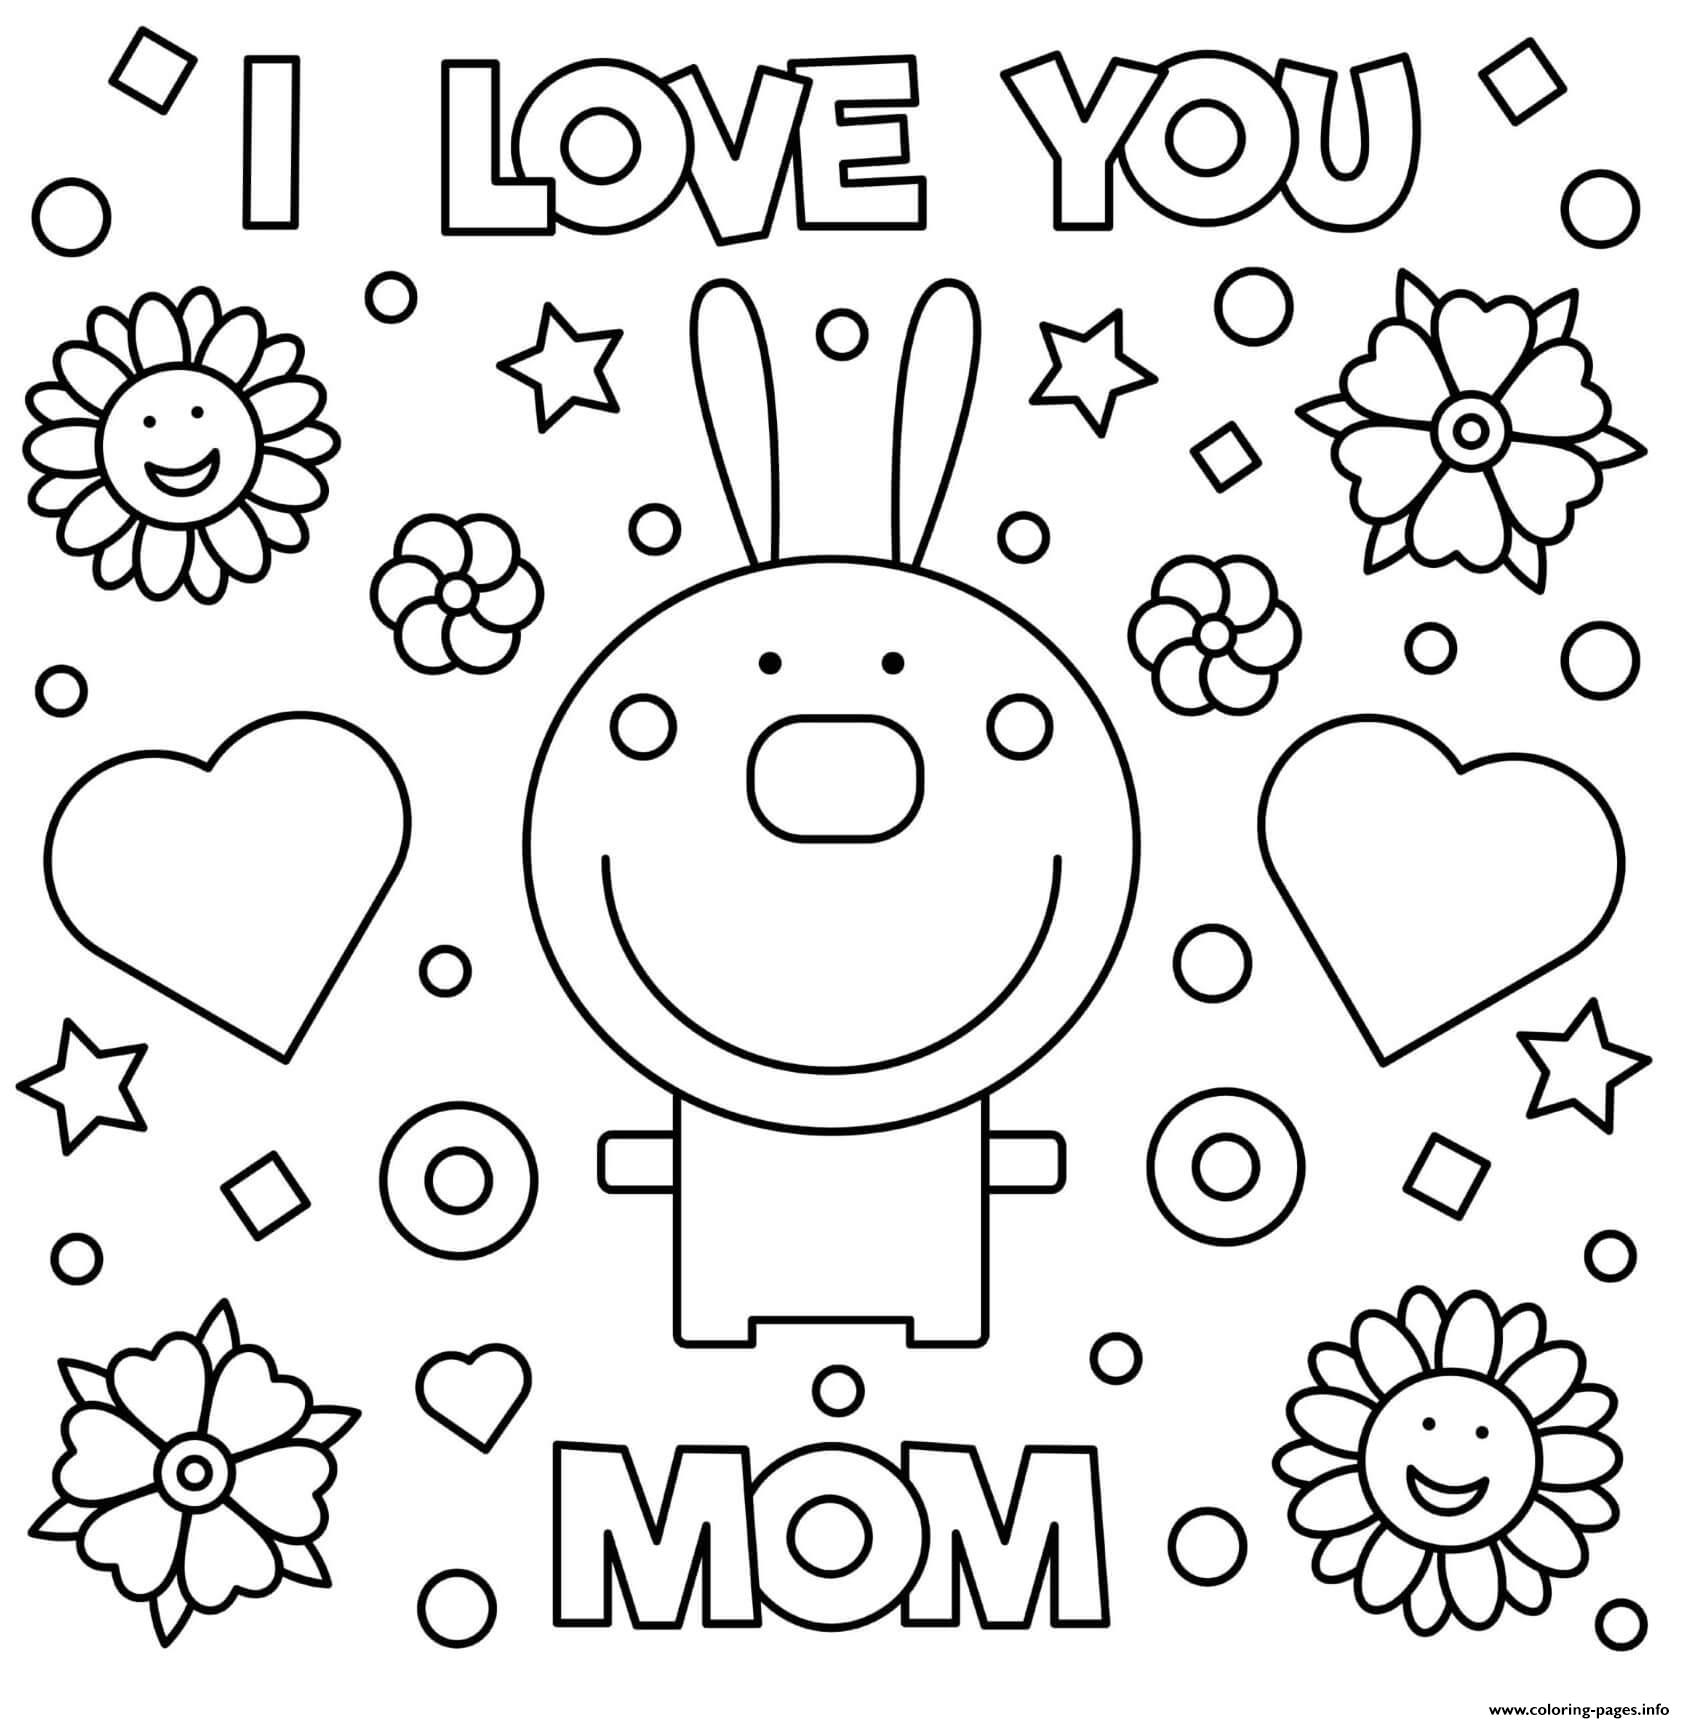 i love u mom coloring pages mothers day rabbit i love you mom coloring pages printable love mom i u pages coloring